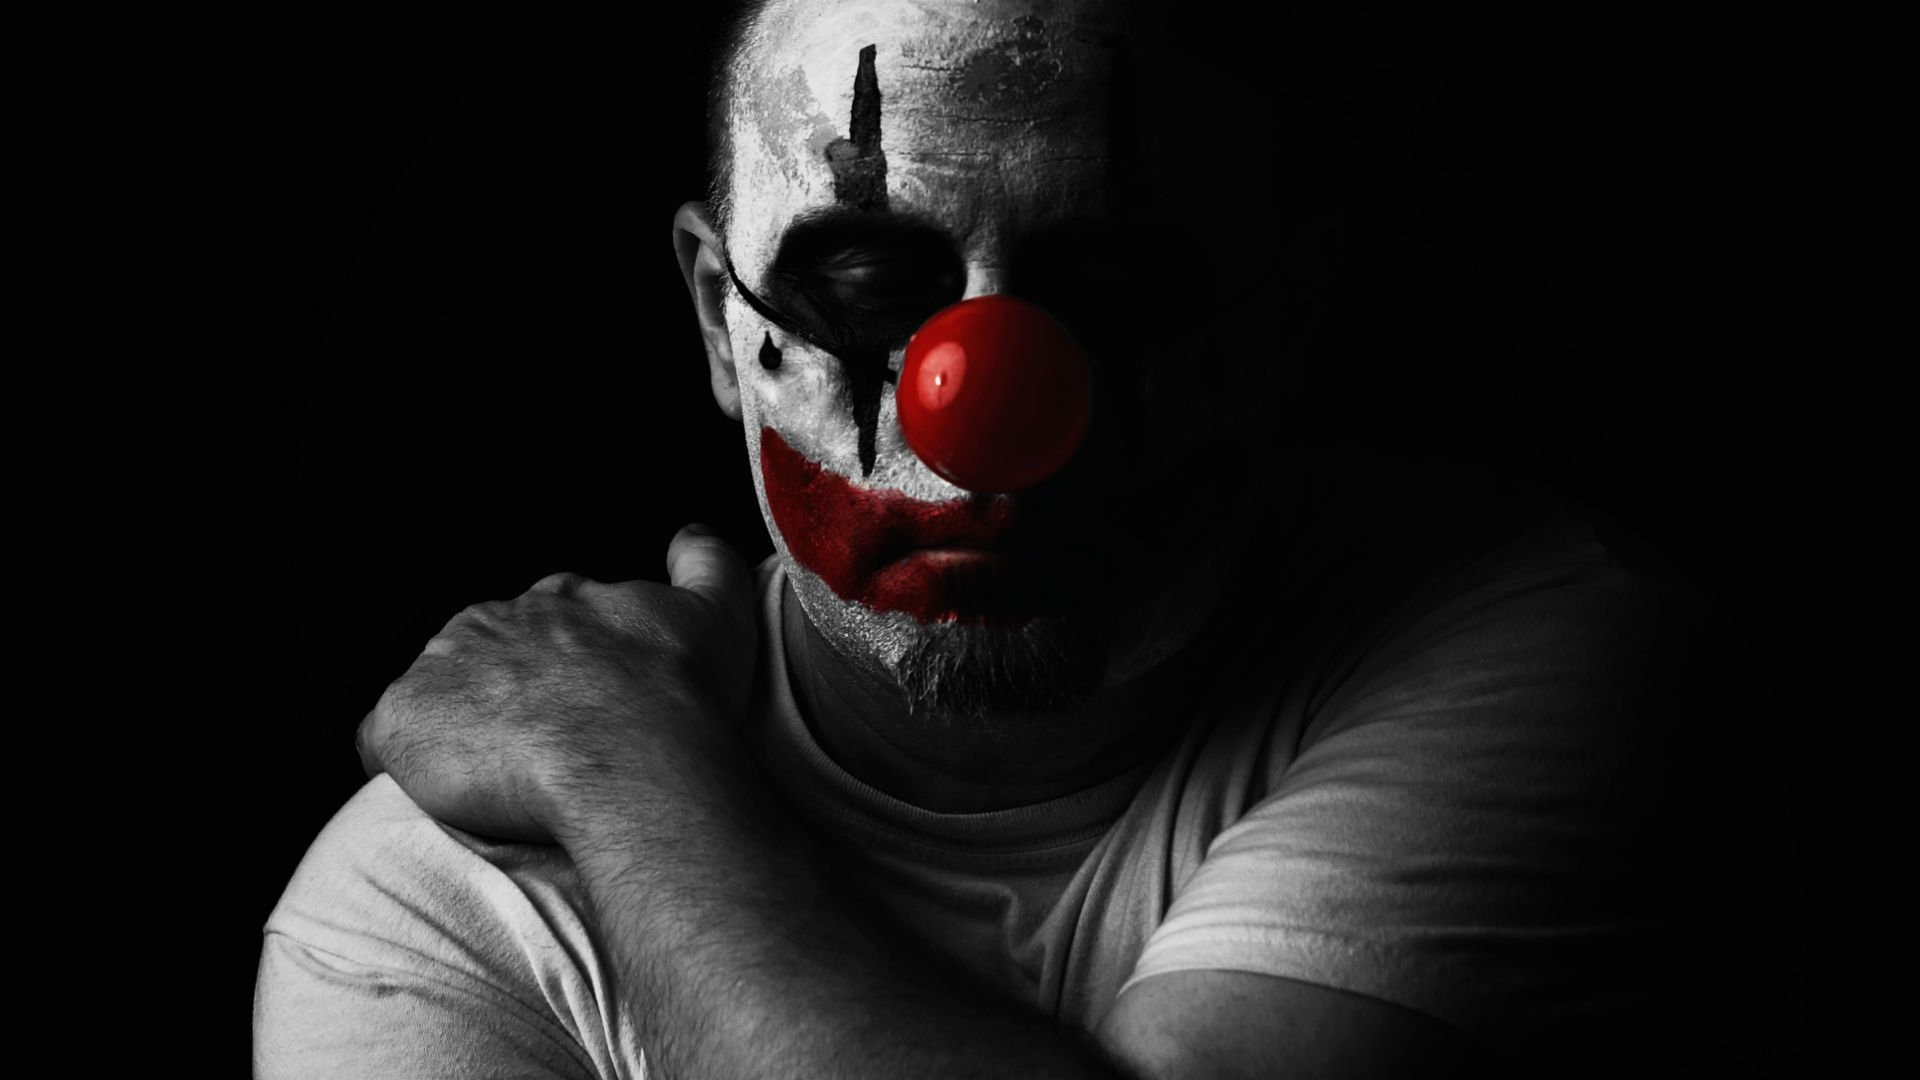 1920x1080 Pics For e Evil Clown Wallpapers Hd t you think were F